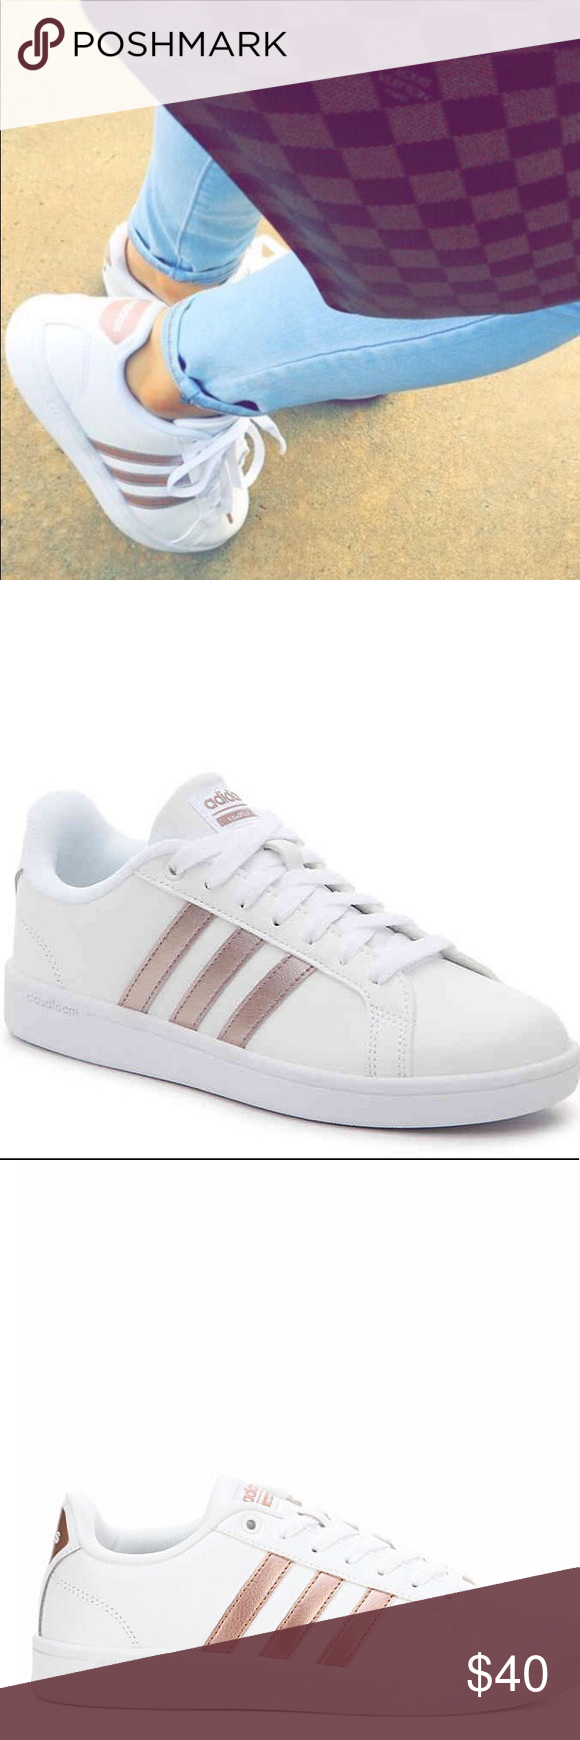 44f25832eab8 ADIDAS ADVANTAGE SNEAKER - WOMEN S Rose Gold 🛍Bundle for great deals 🛍 Smoke   Pet Free Home 🛍Make an Offer! adidas Shoes Sneakers